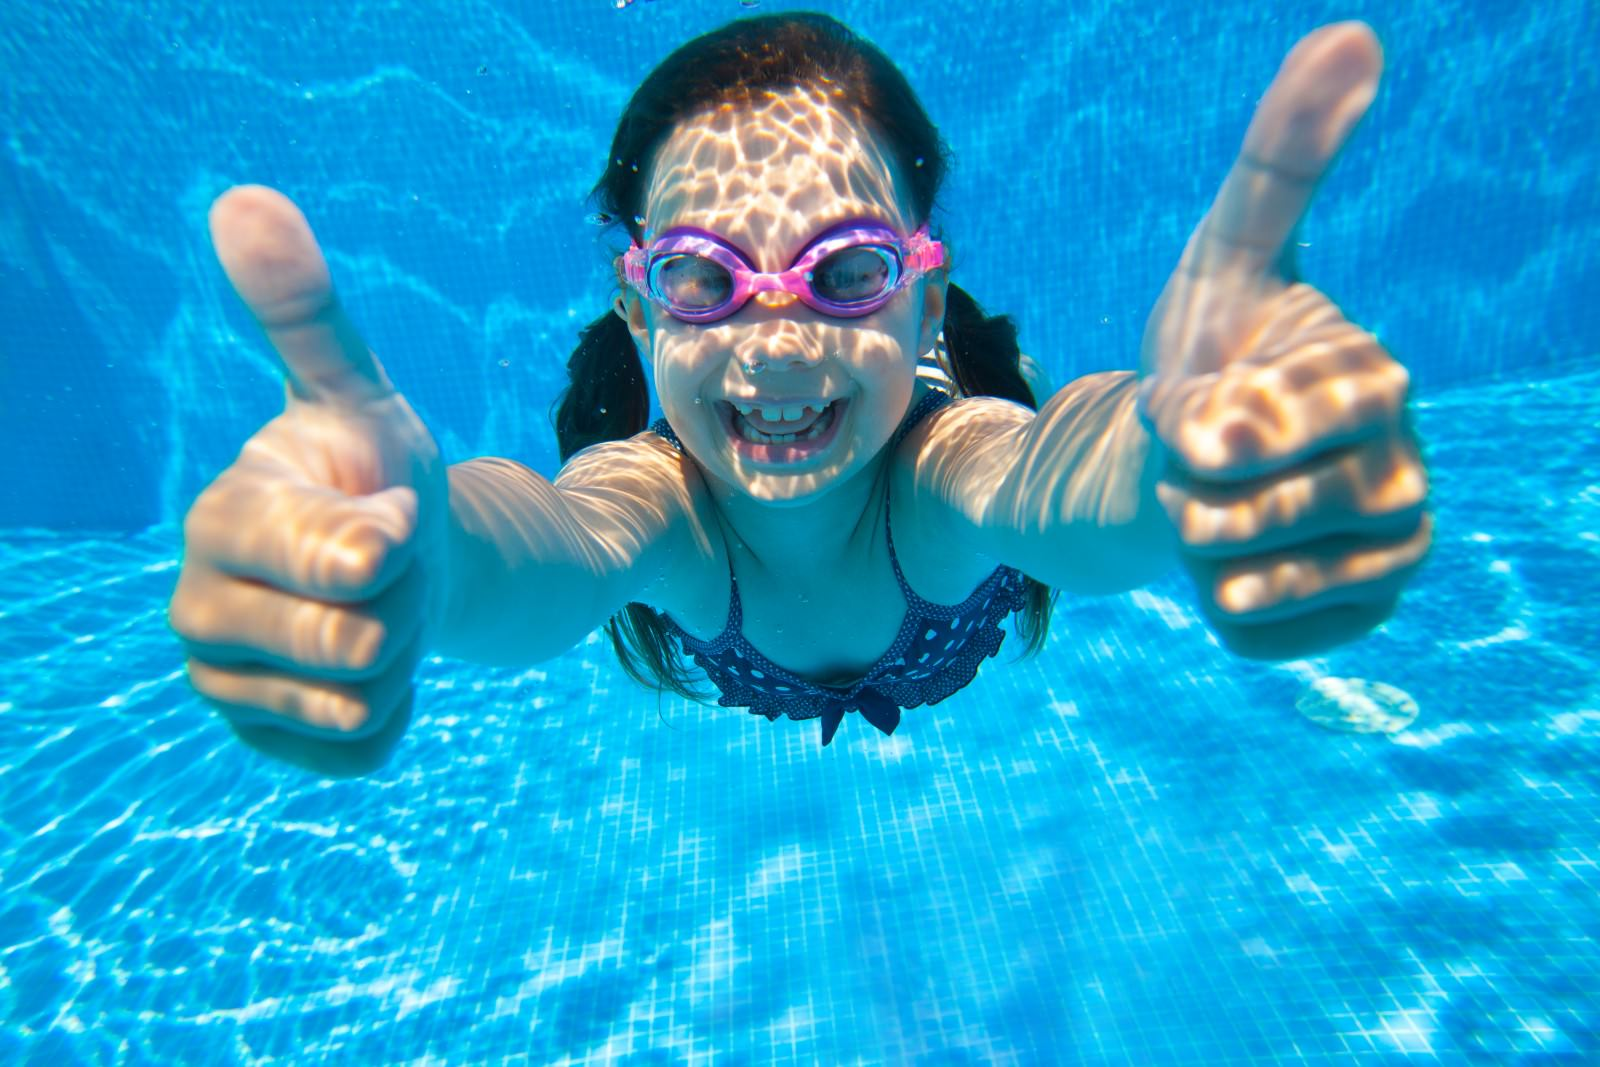 Swimming Goggles Are A Must While Swimming!